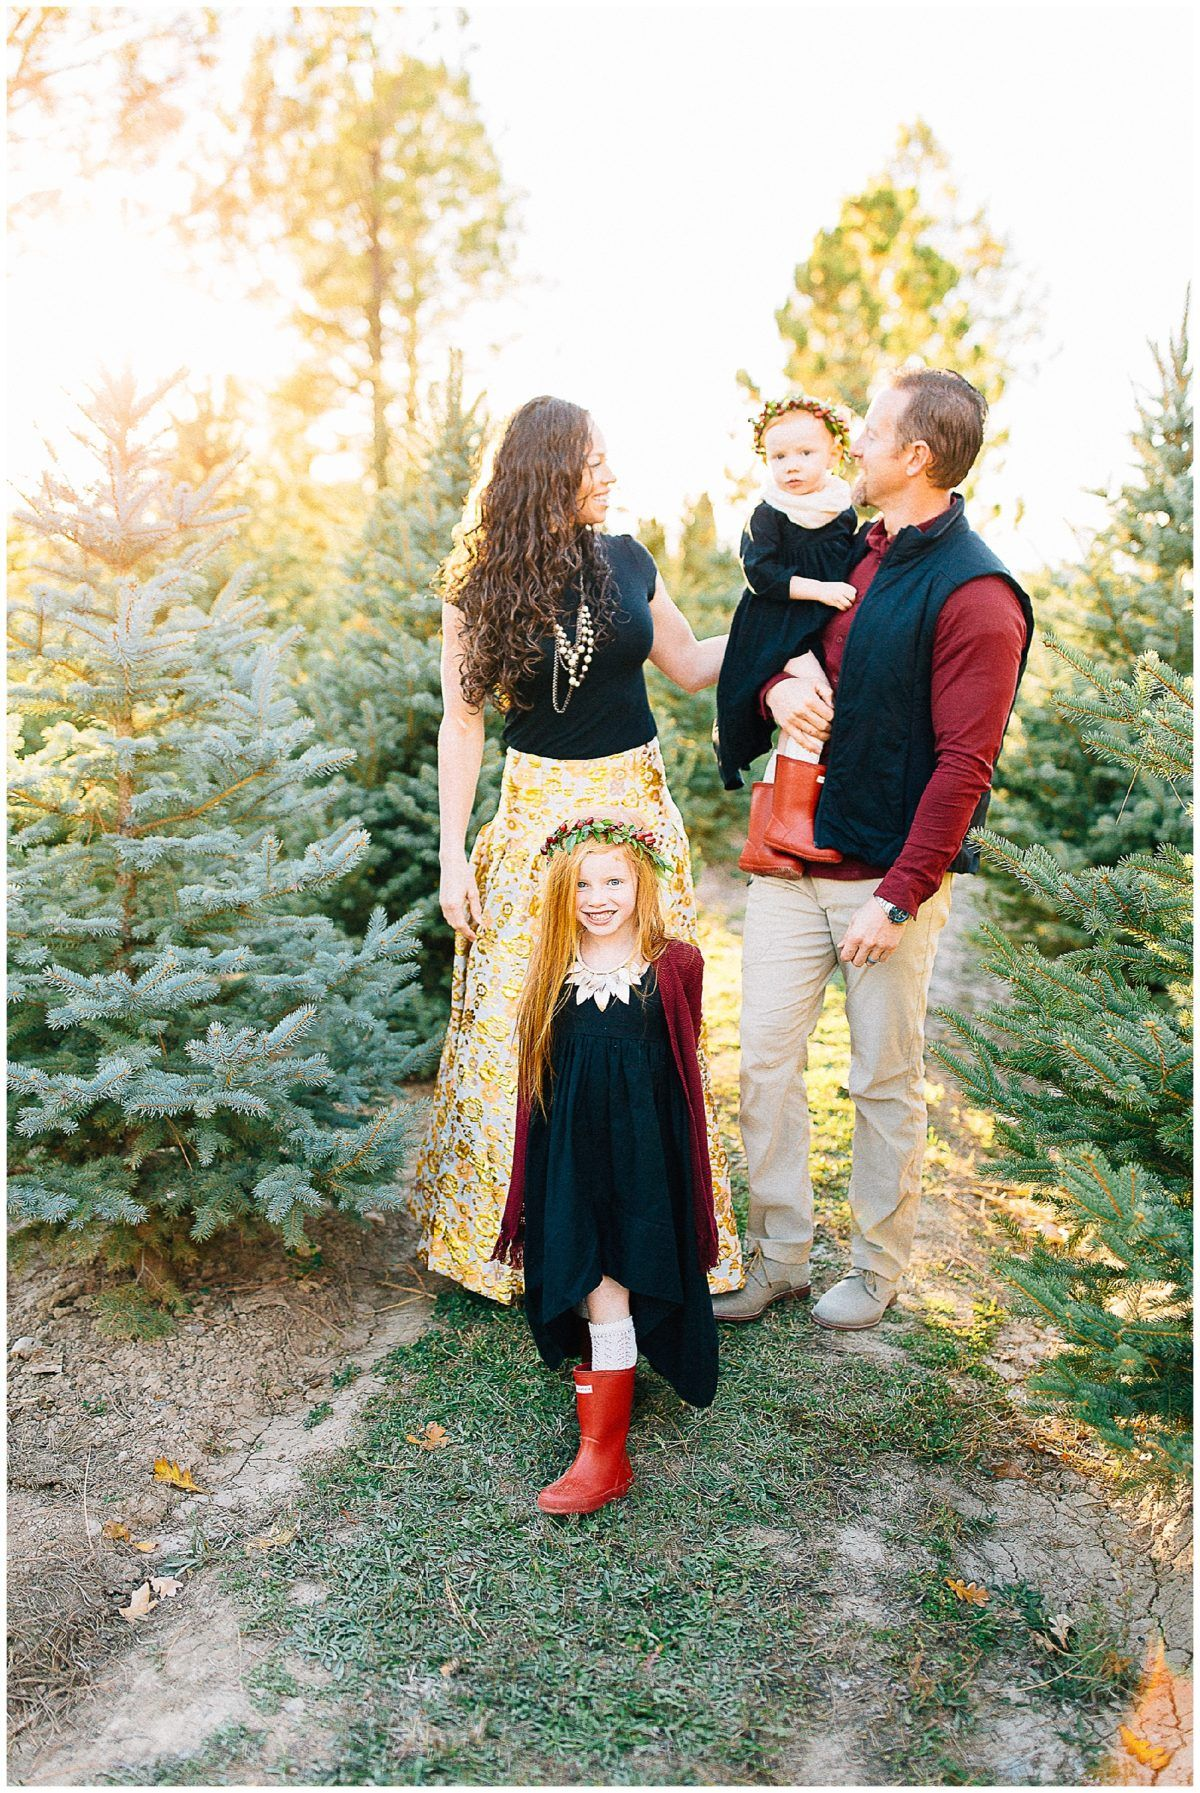 Christmas Mini Session Tree Farm Christmas Pictures Christmas Tree Farm Pictures Christmas Ideas Christmas Card Ideas Utah Photographers Winter Family Pictures Family Christmas Pictures